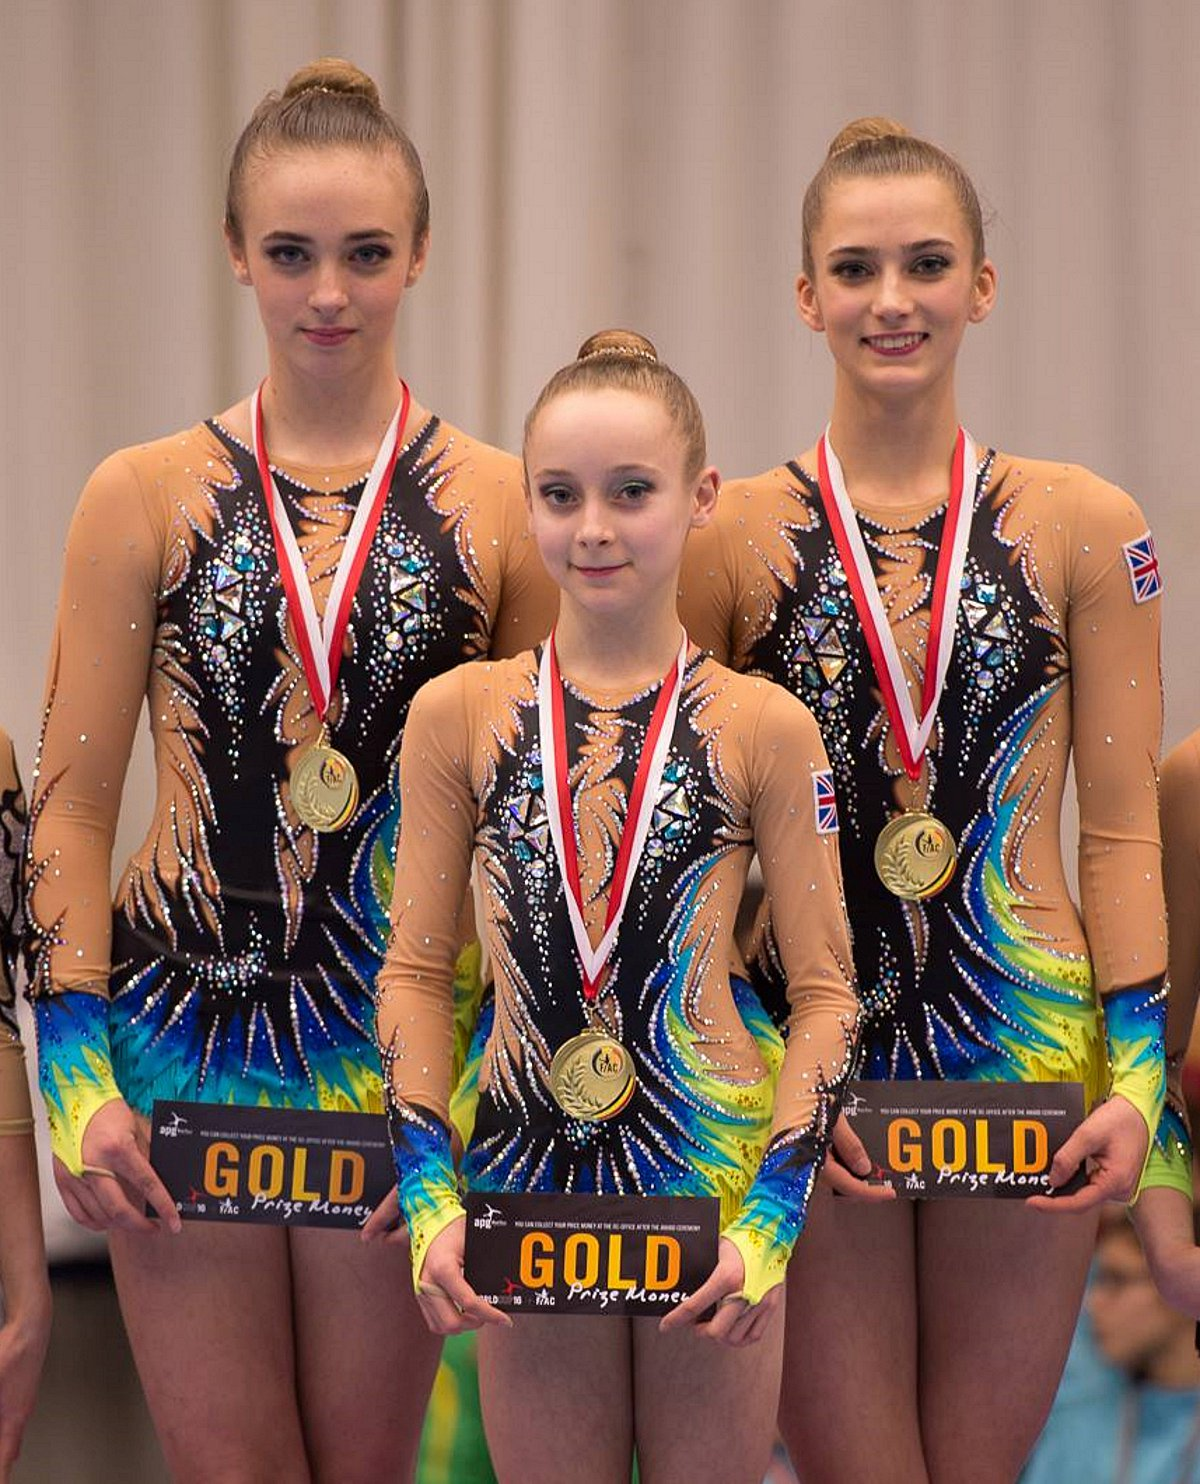 Golden girls: RGA's Tabbie Dawson, Kitty Williams and Scarlett Wright with their Flanders International Acro Cup gold medals